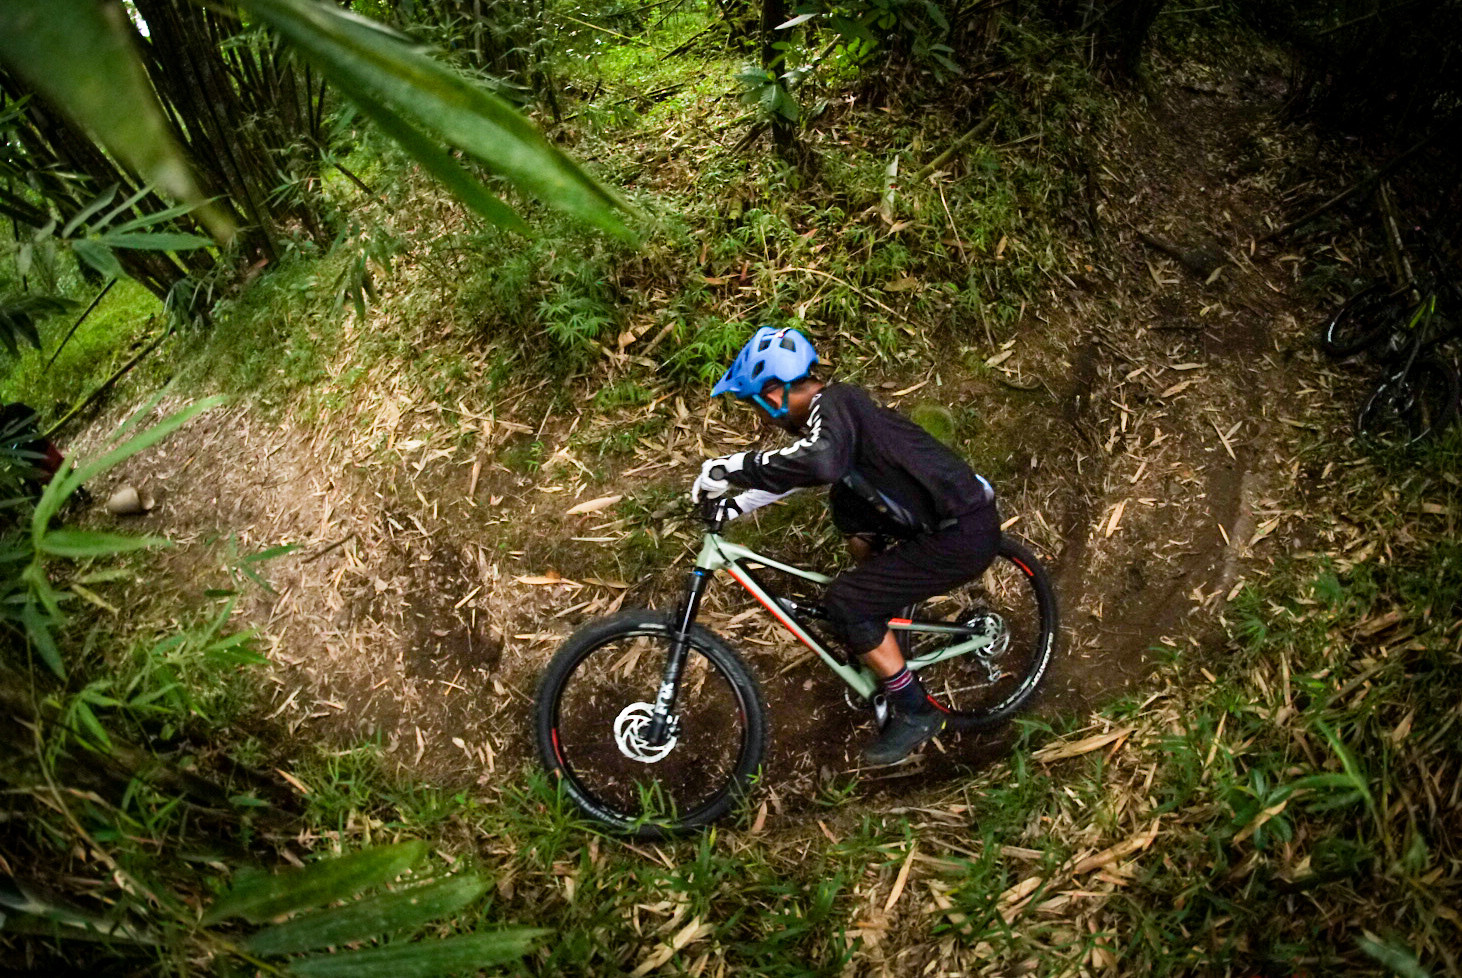 How low can you go?  - RezaAkhmad - Mountain Biking Pictures - Vital MTB